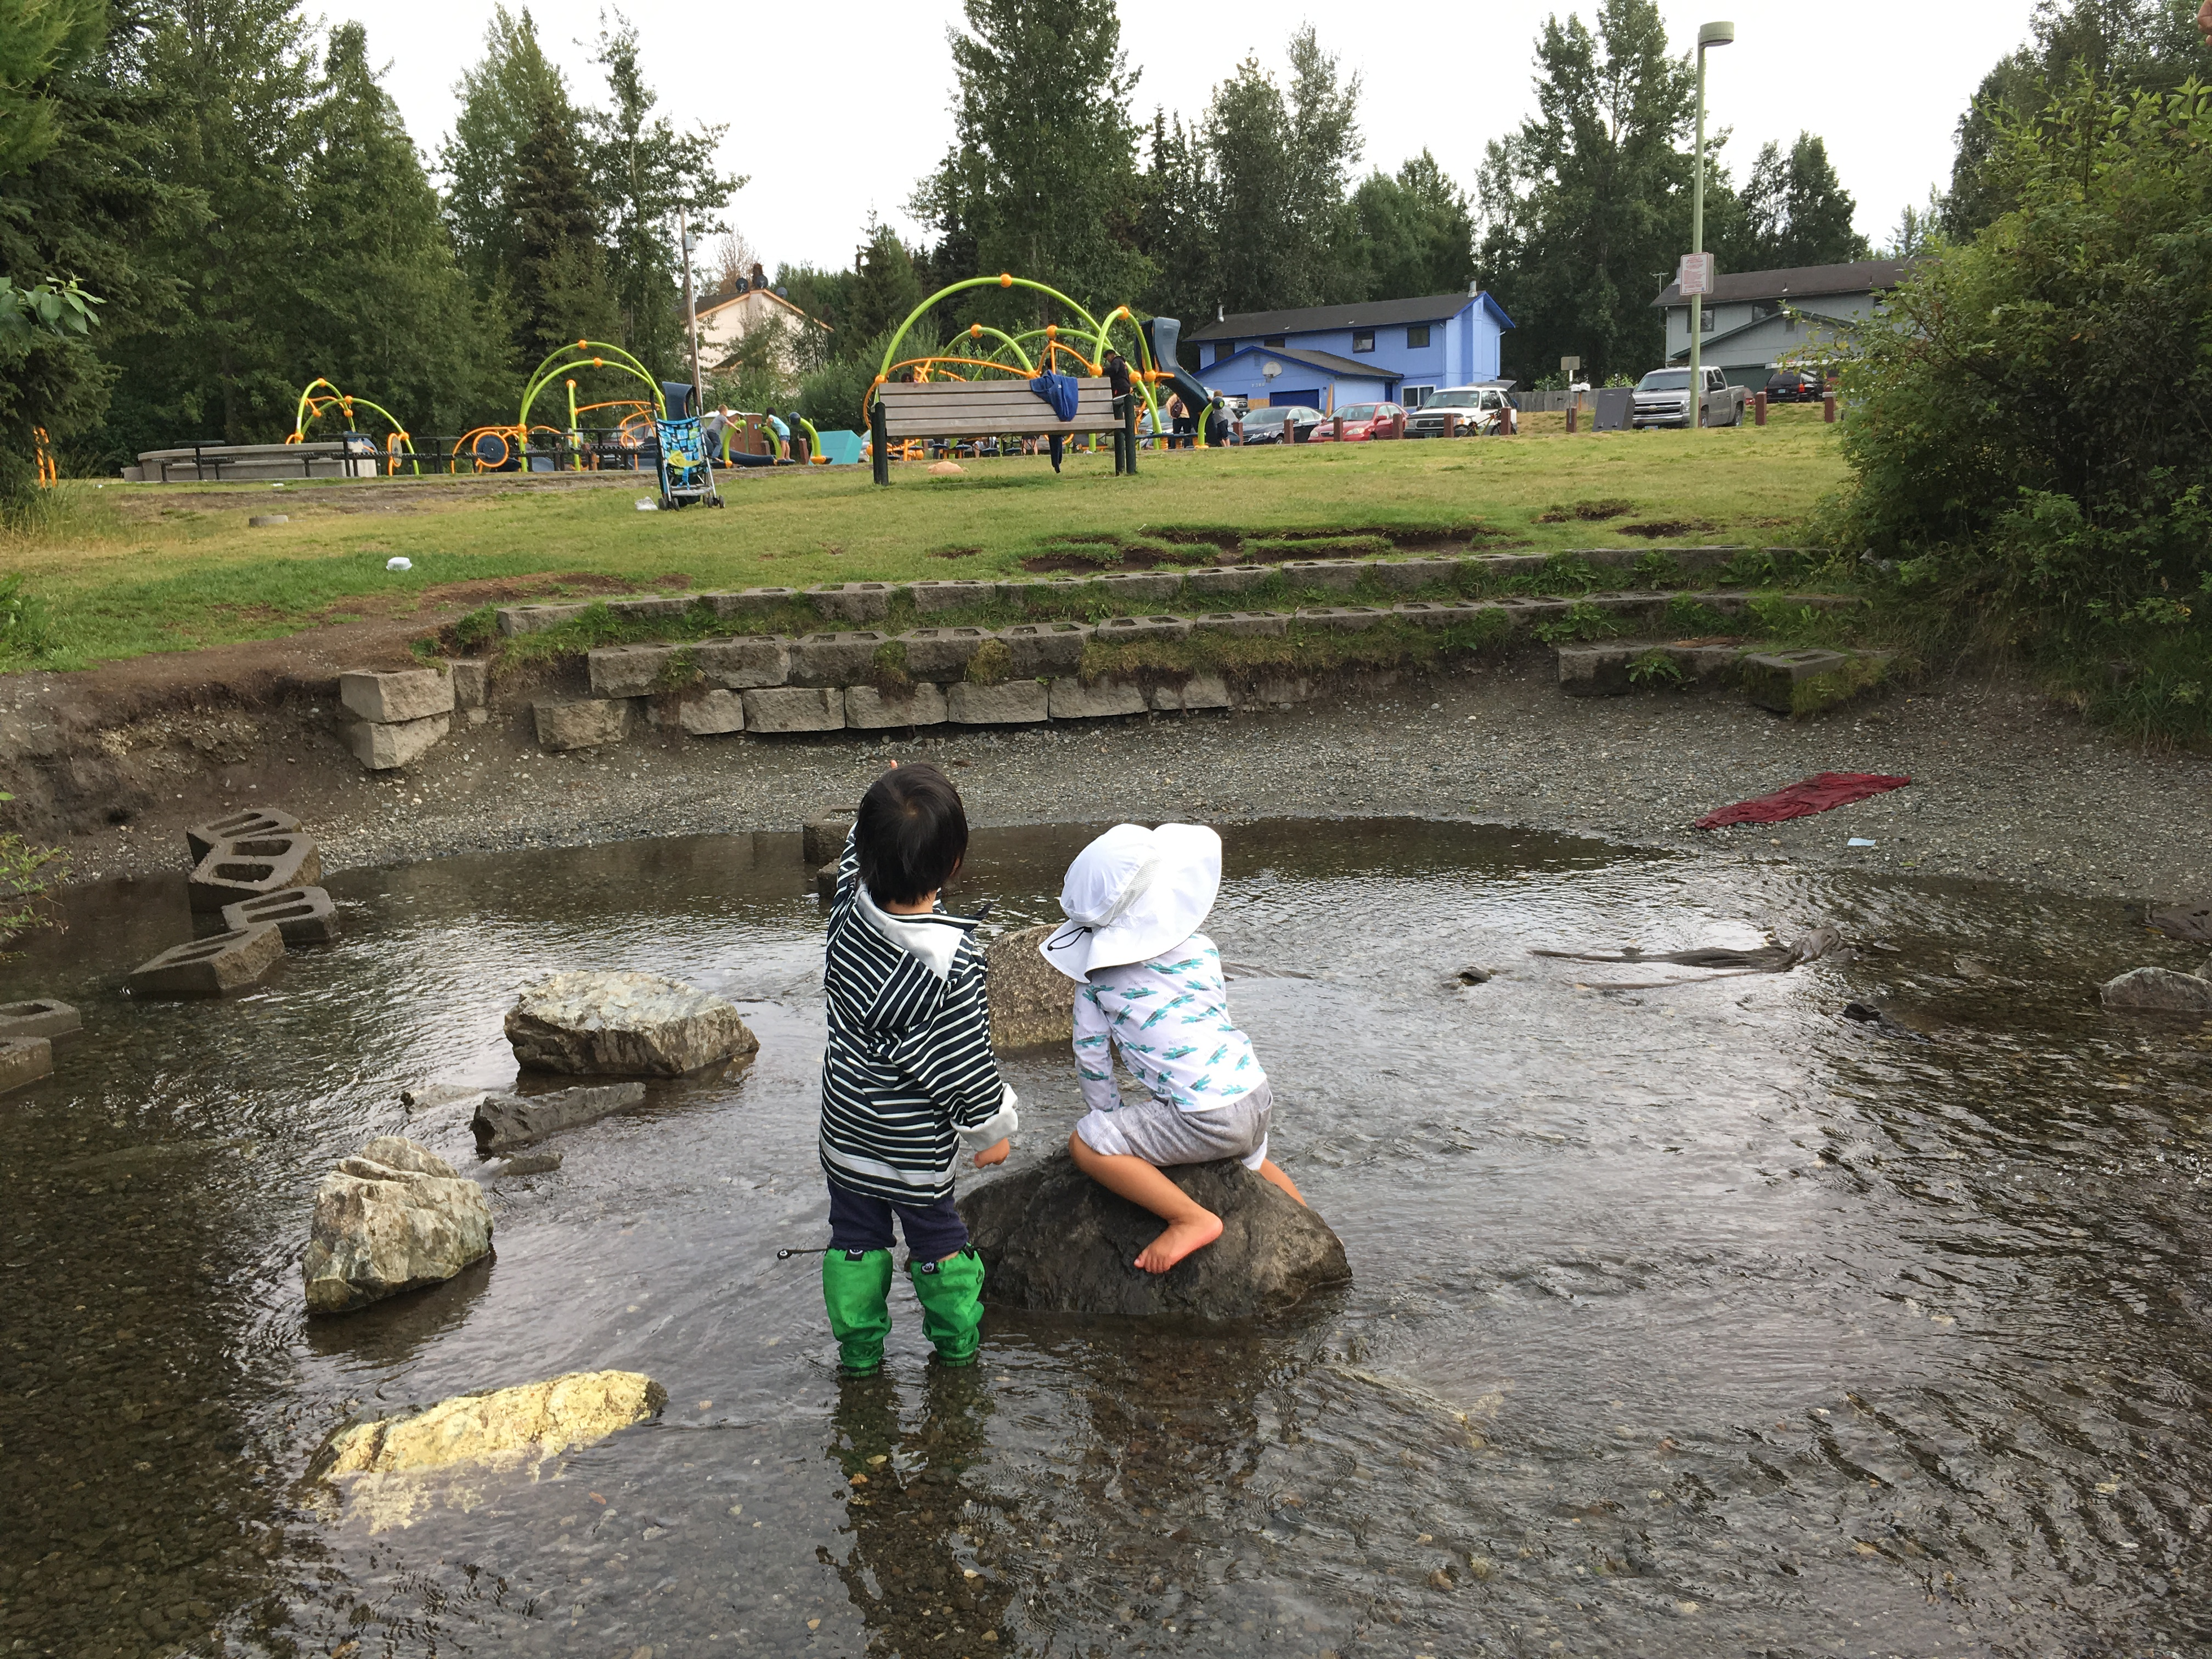 Two toddlers play together in a creek next to a playground